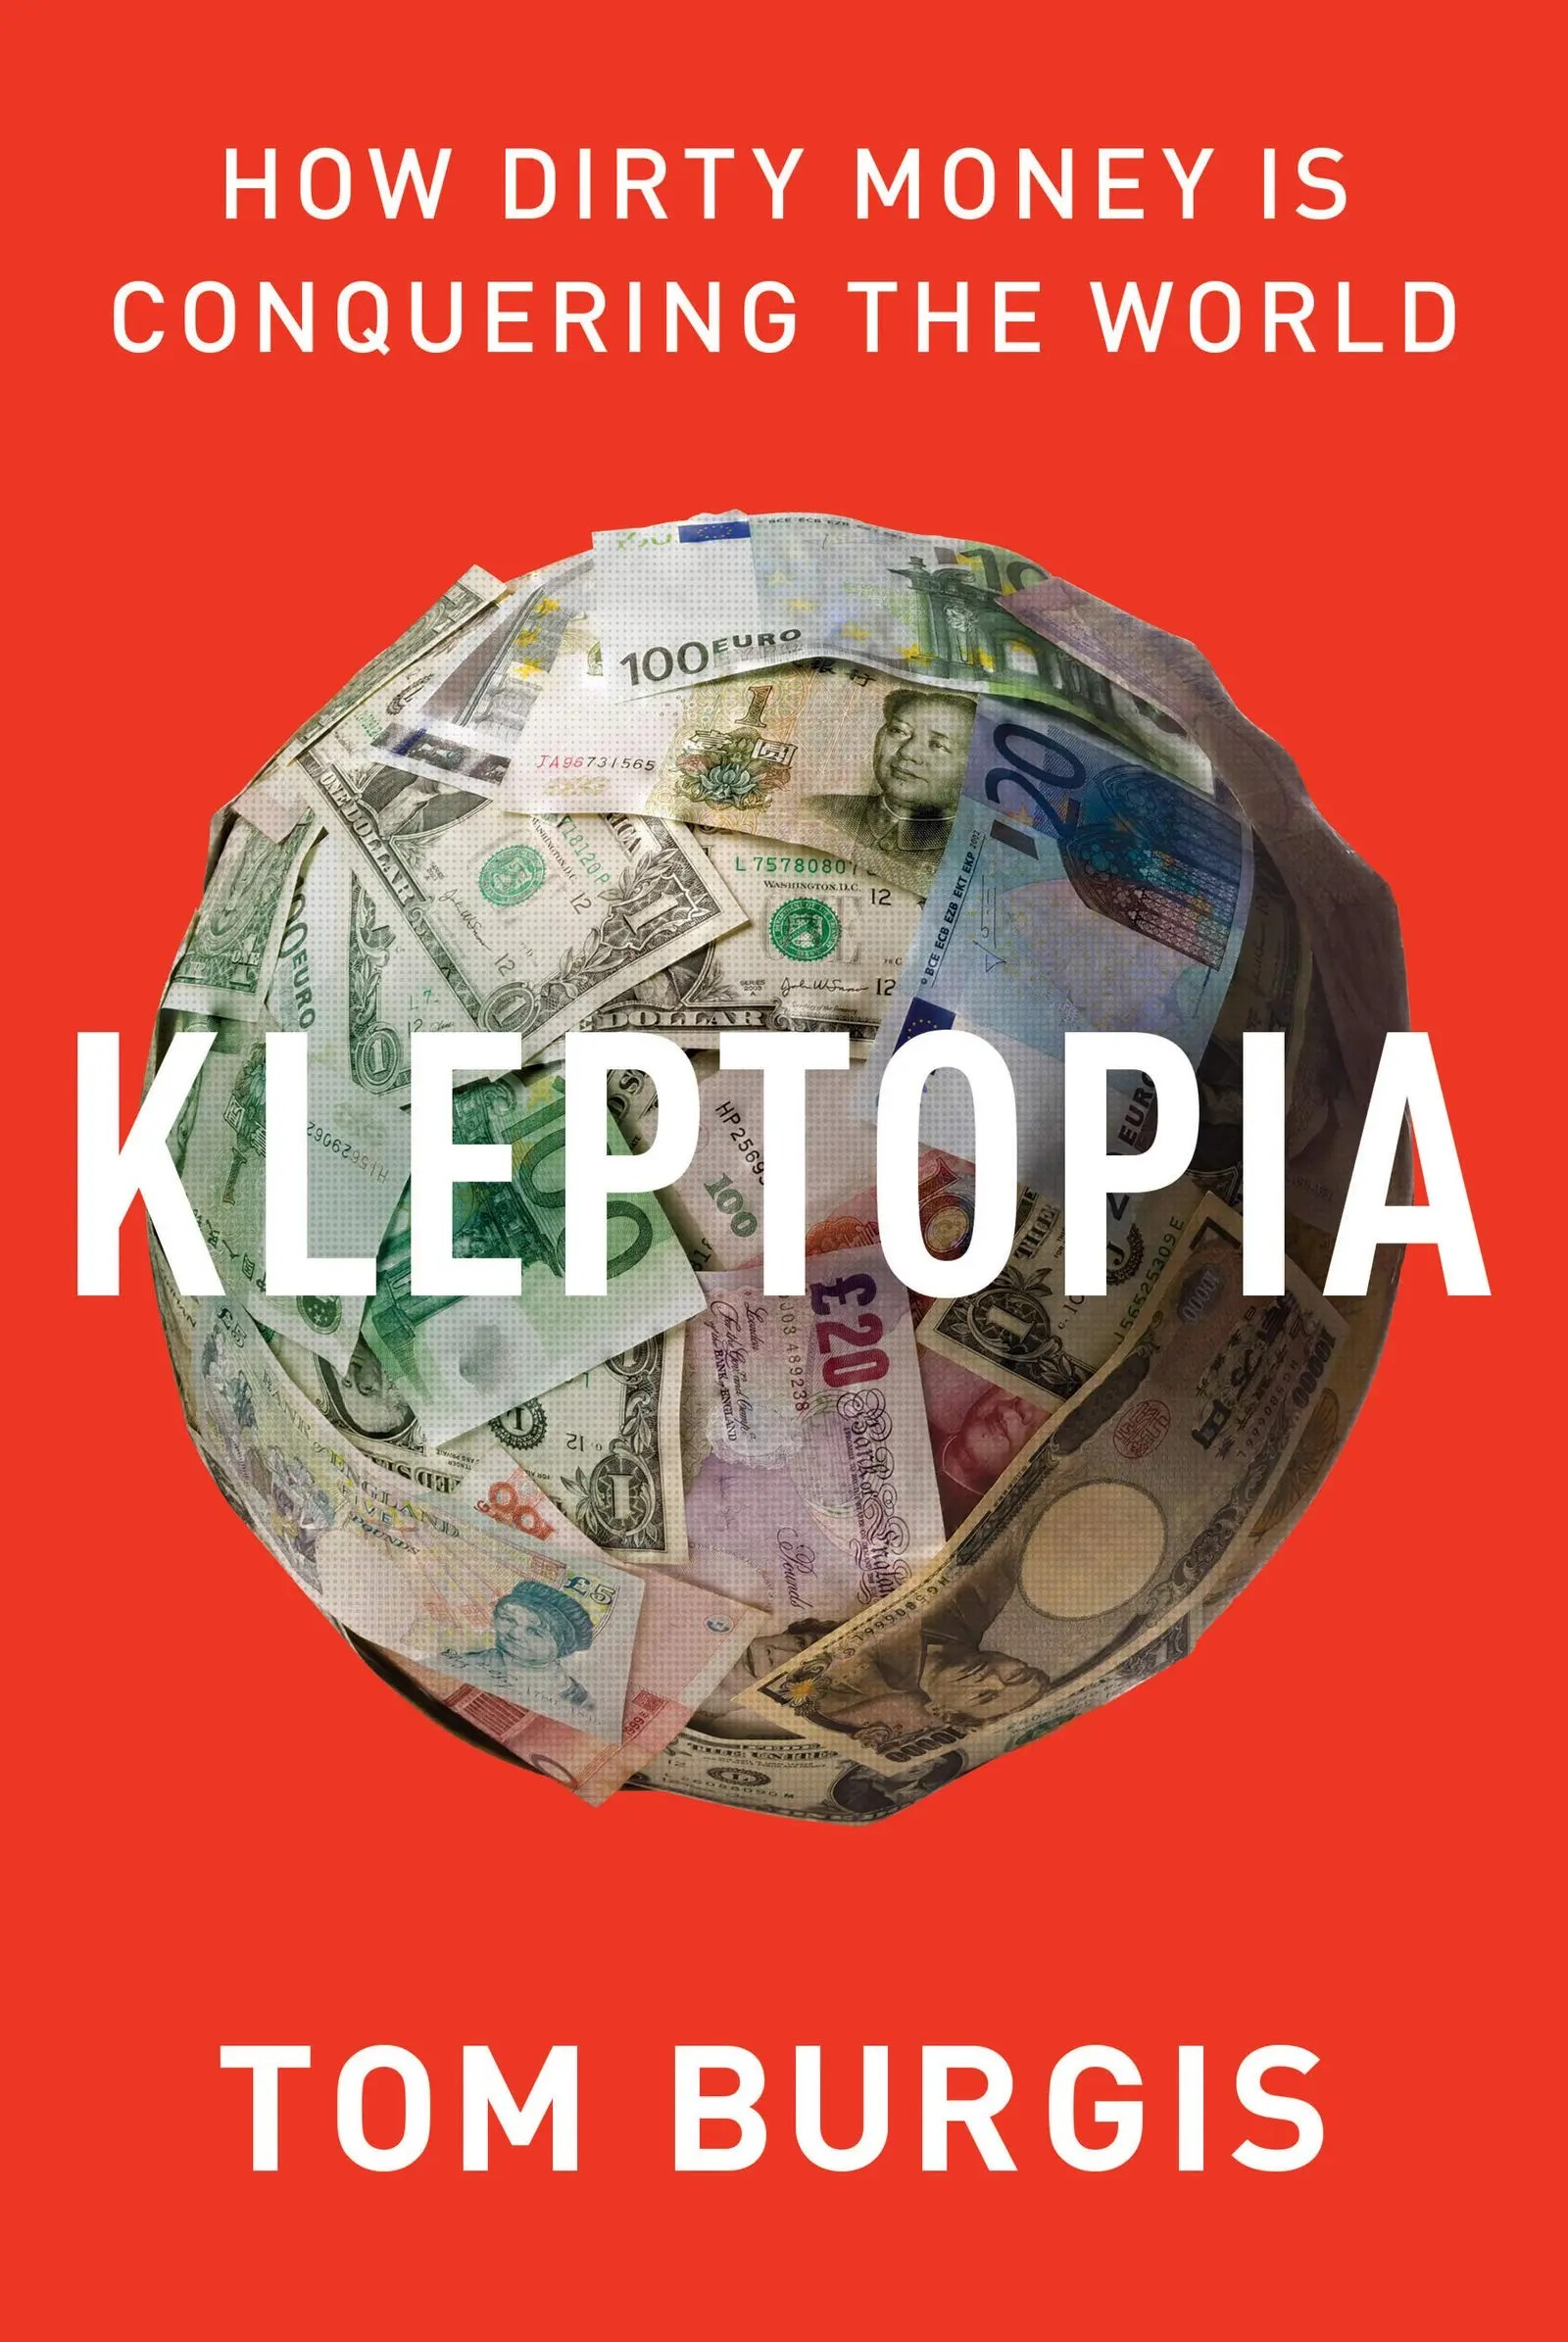 Has the 'Cold War' been succeeded by a metaphorical 'Gold War'? Martin Dewhirst reviews Tom Burgis' 'Kleptopia: How Dirty Money is Conquering the World'